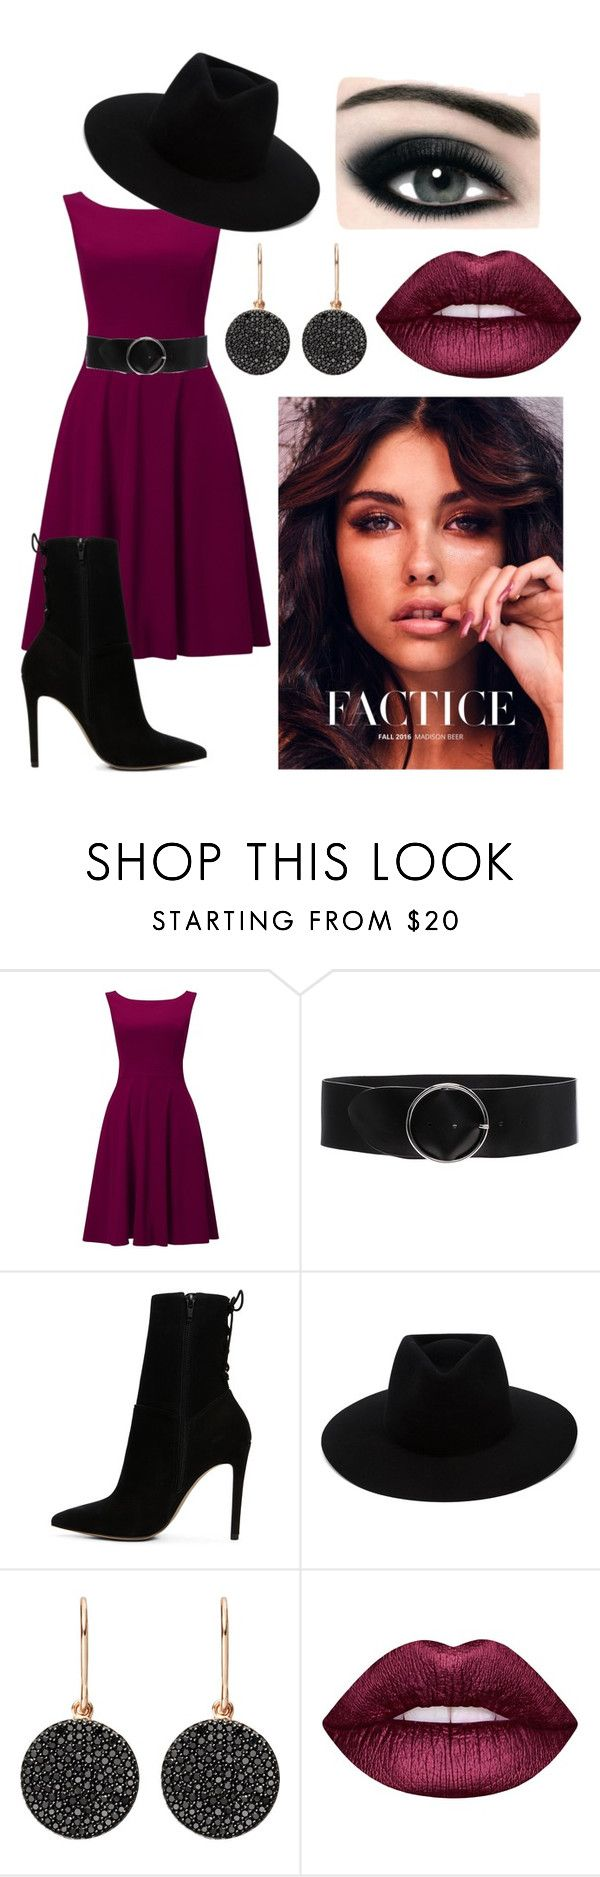 """Two Shades Dress"" by claire1sage ❤ liked on Polyvore featuring Phase Eight, IRO, ALDO, rag & bone, Astley Clarke, Max Factor and Lime Crime"